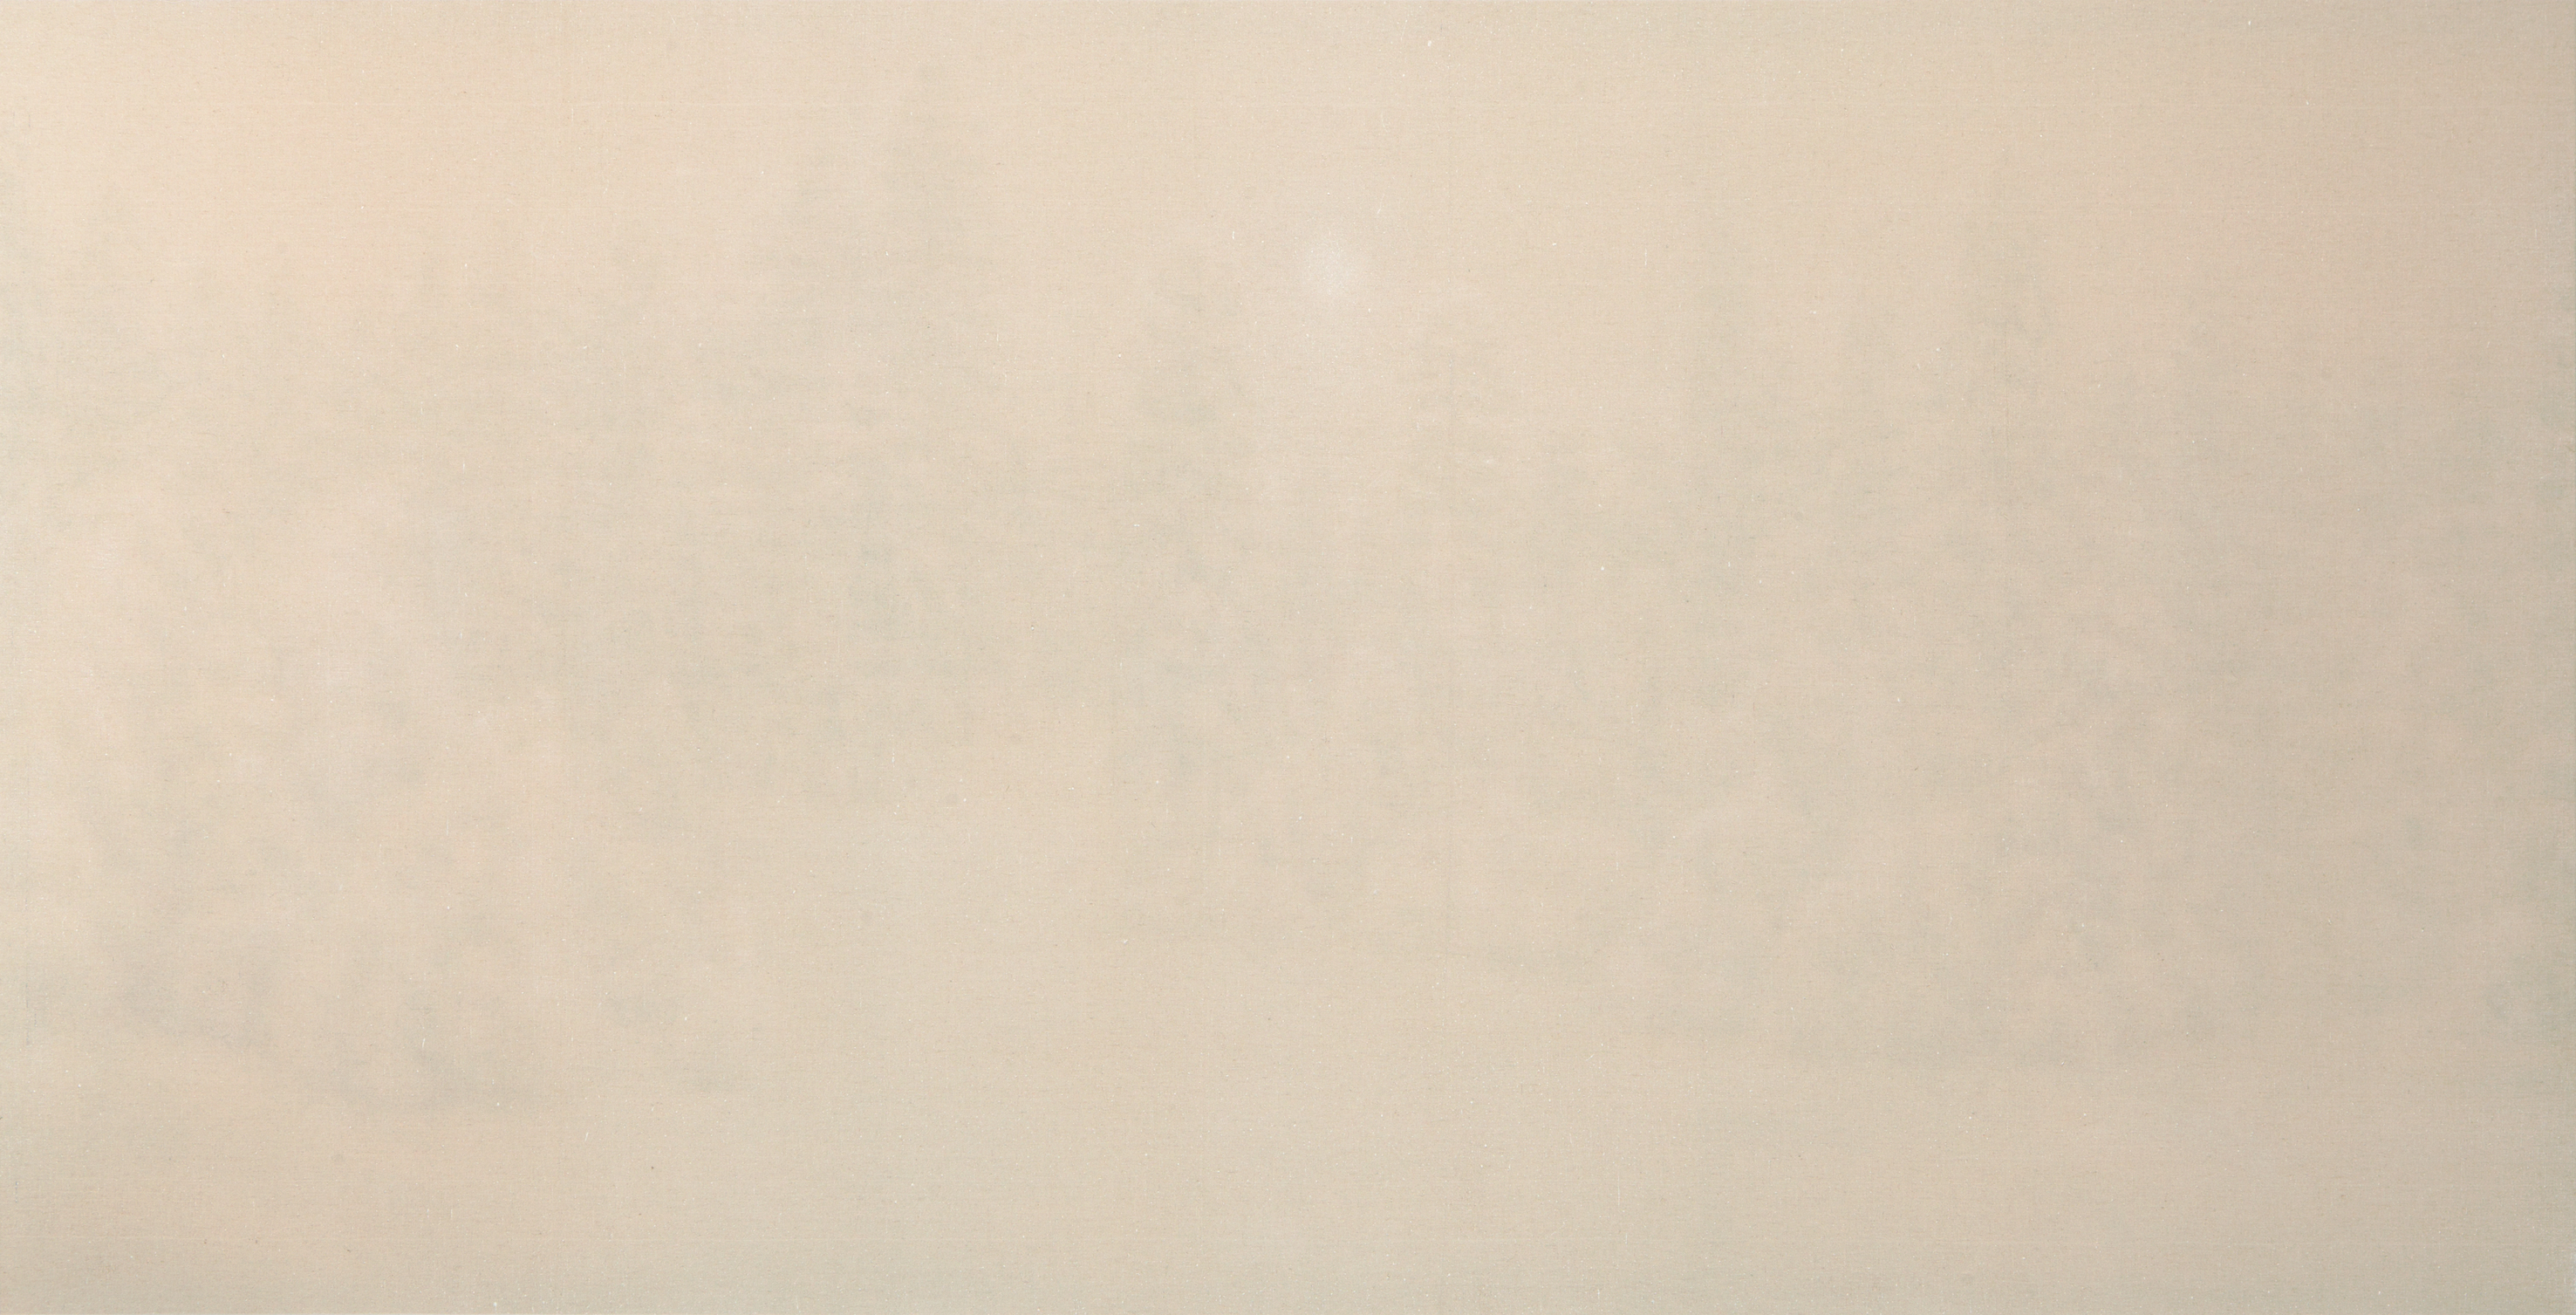 Qiu Shihua untitled, 2010 oil on canvas 150 x 294 Courtesy: Galerie Urs Meile, Beijing-Lucern